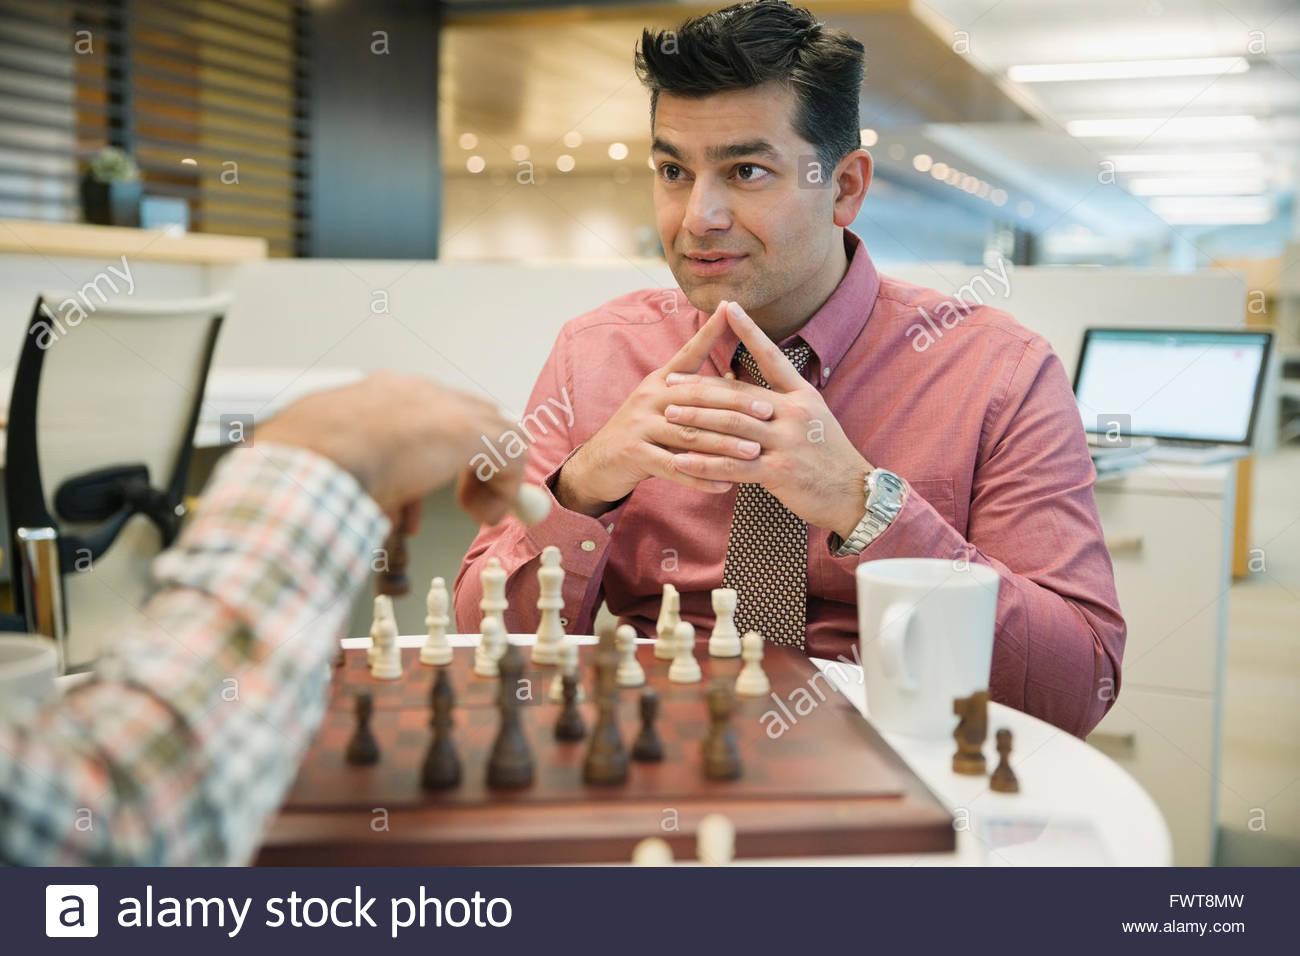 Businessman playing chess with coworker in office - Stock Image